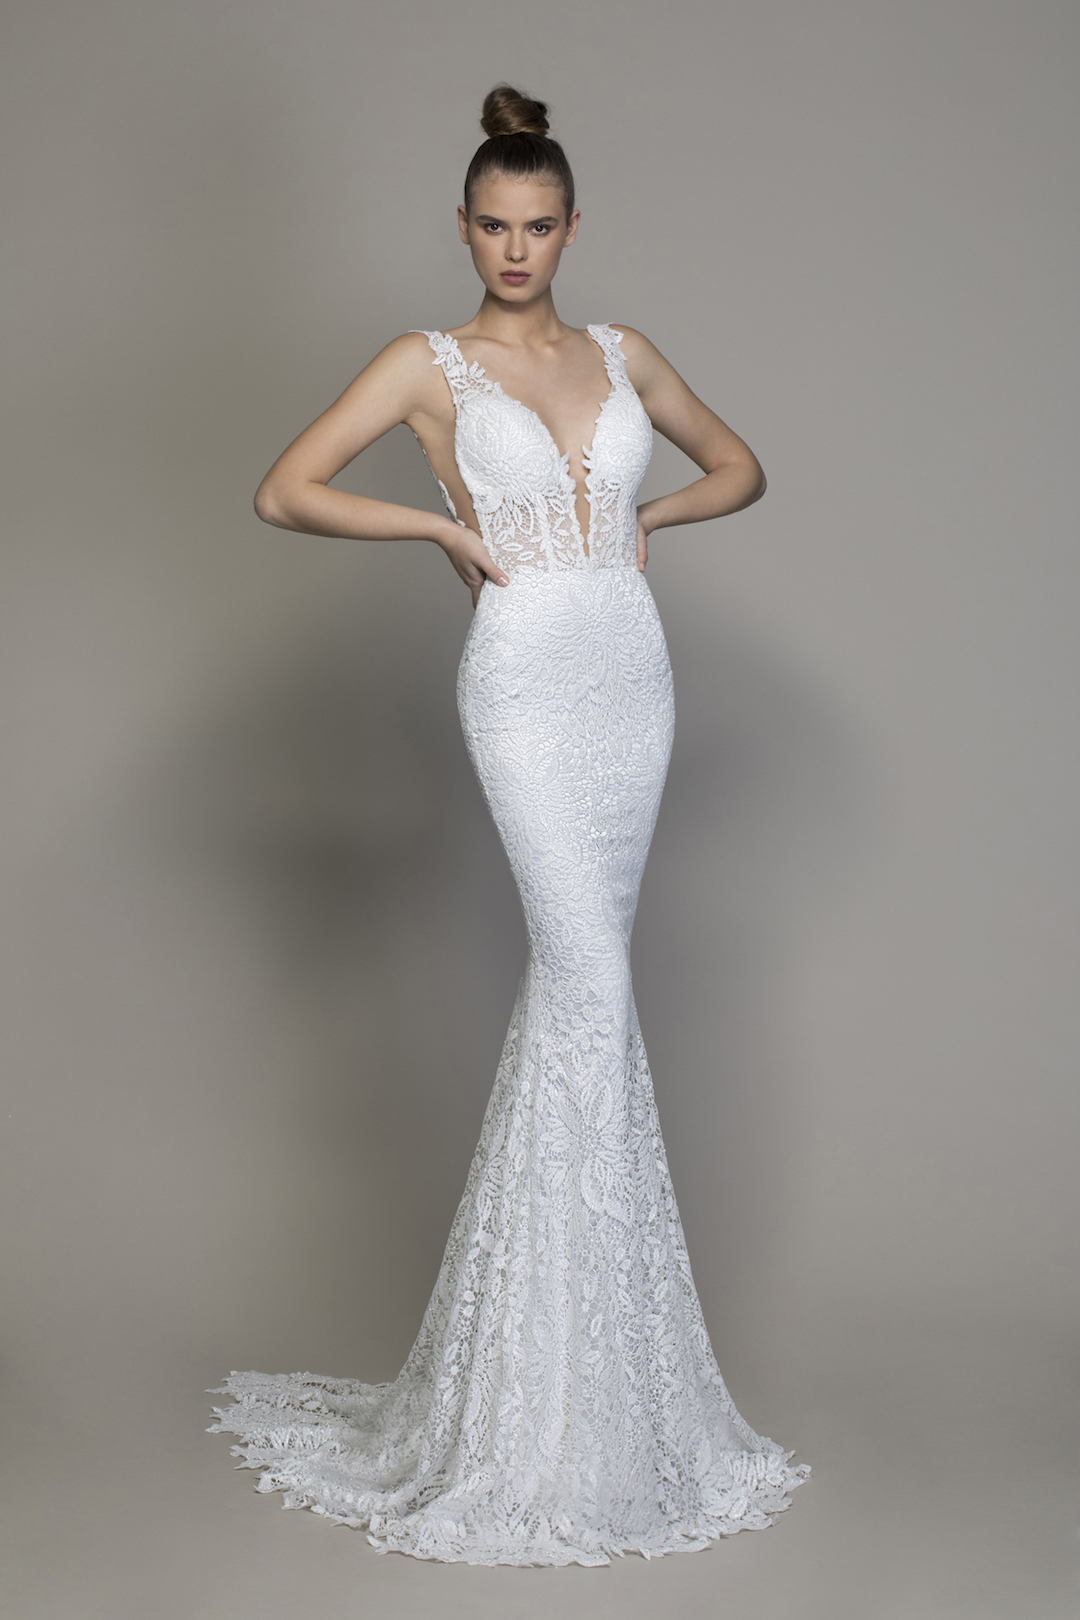 Pnina Tornai's new LOVE 2020 Collection is out! This is style 14759